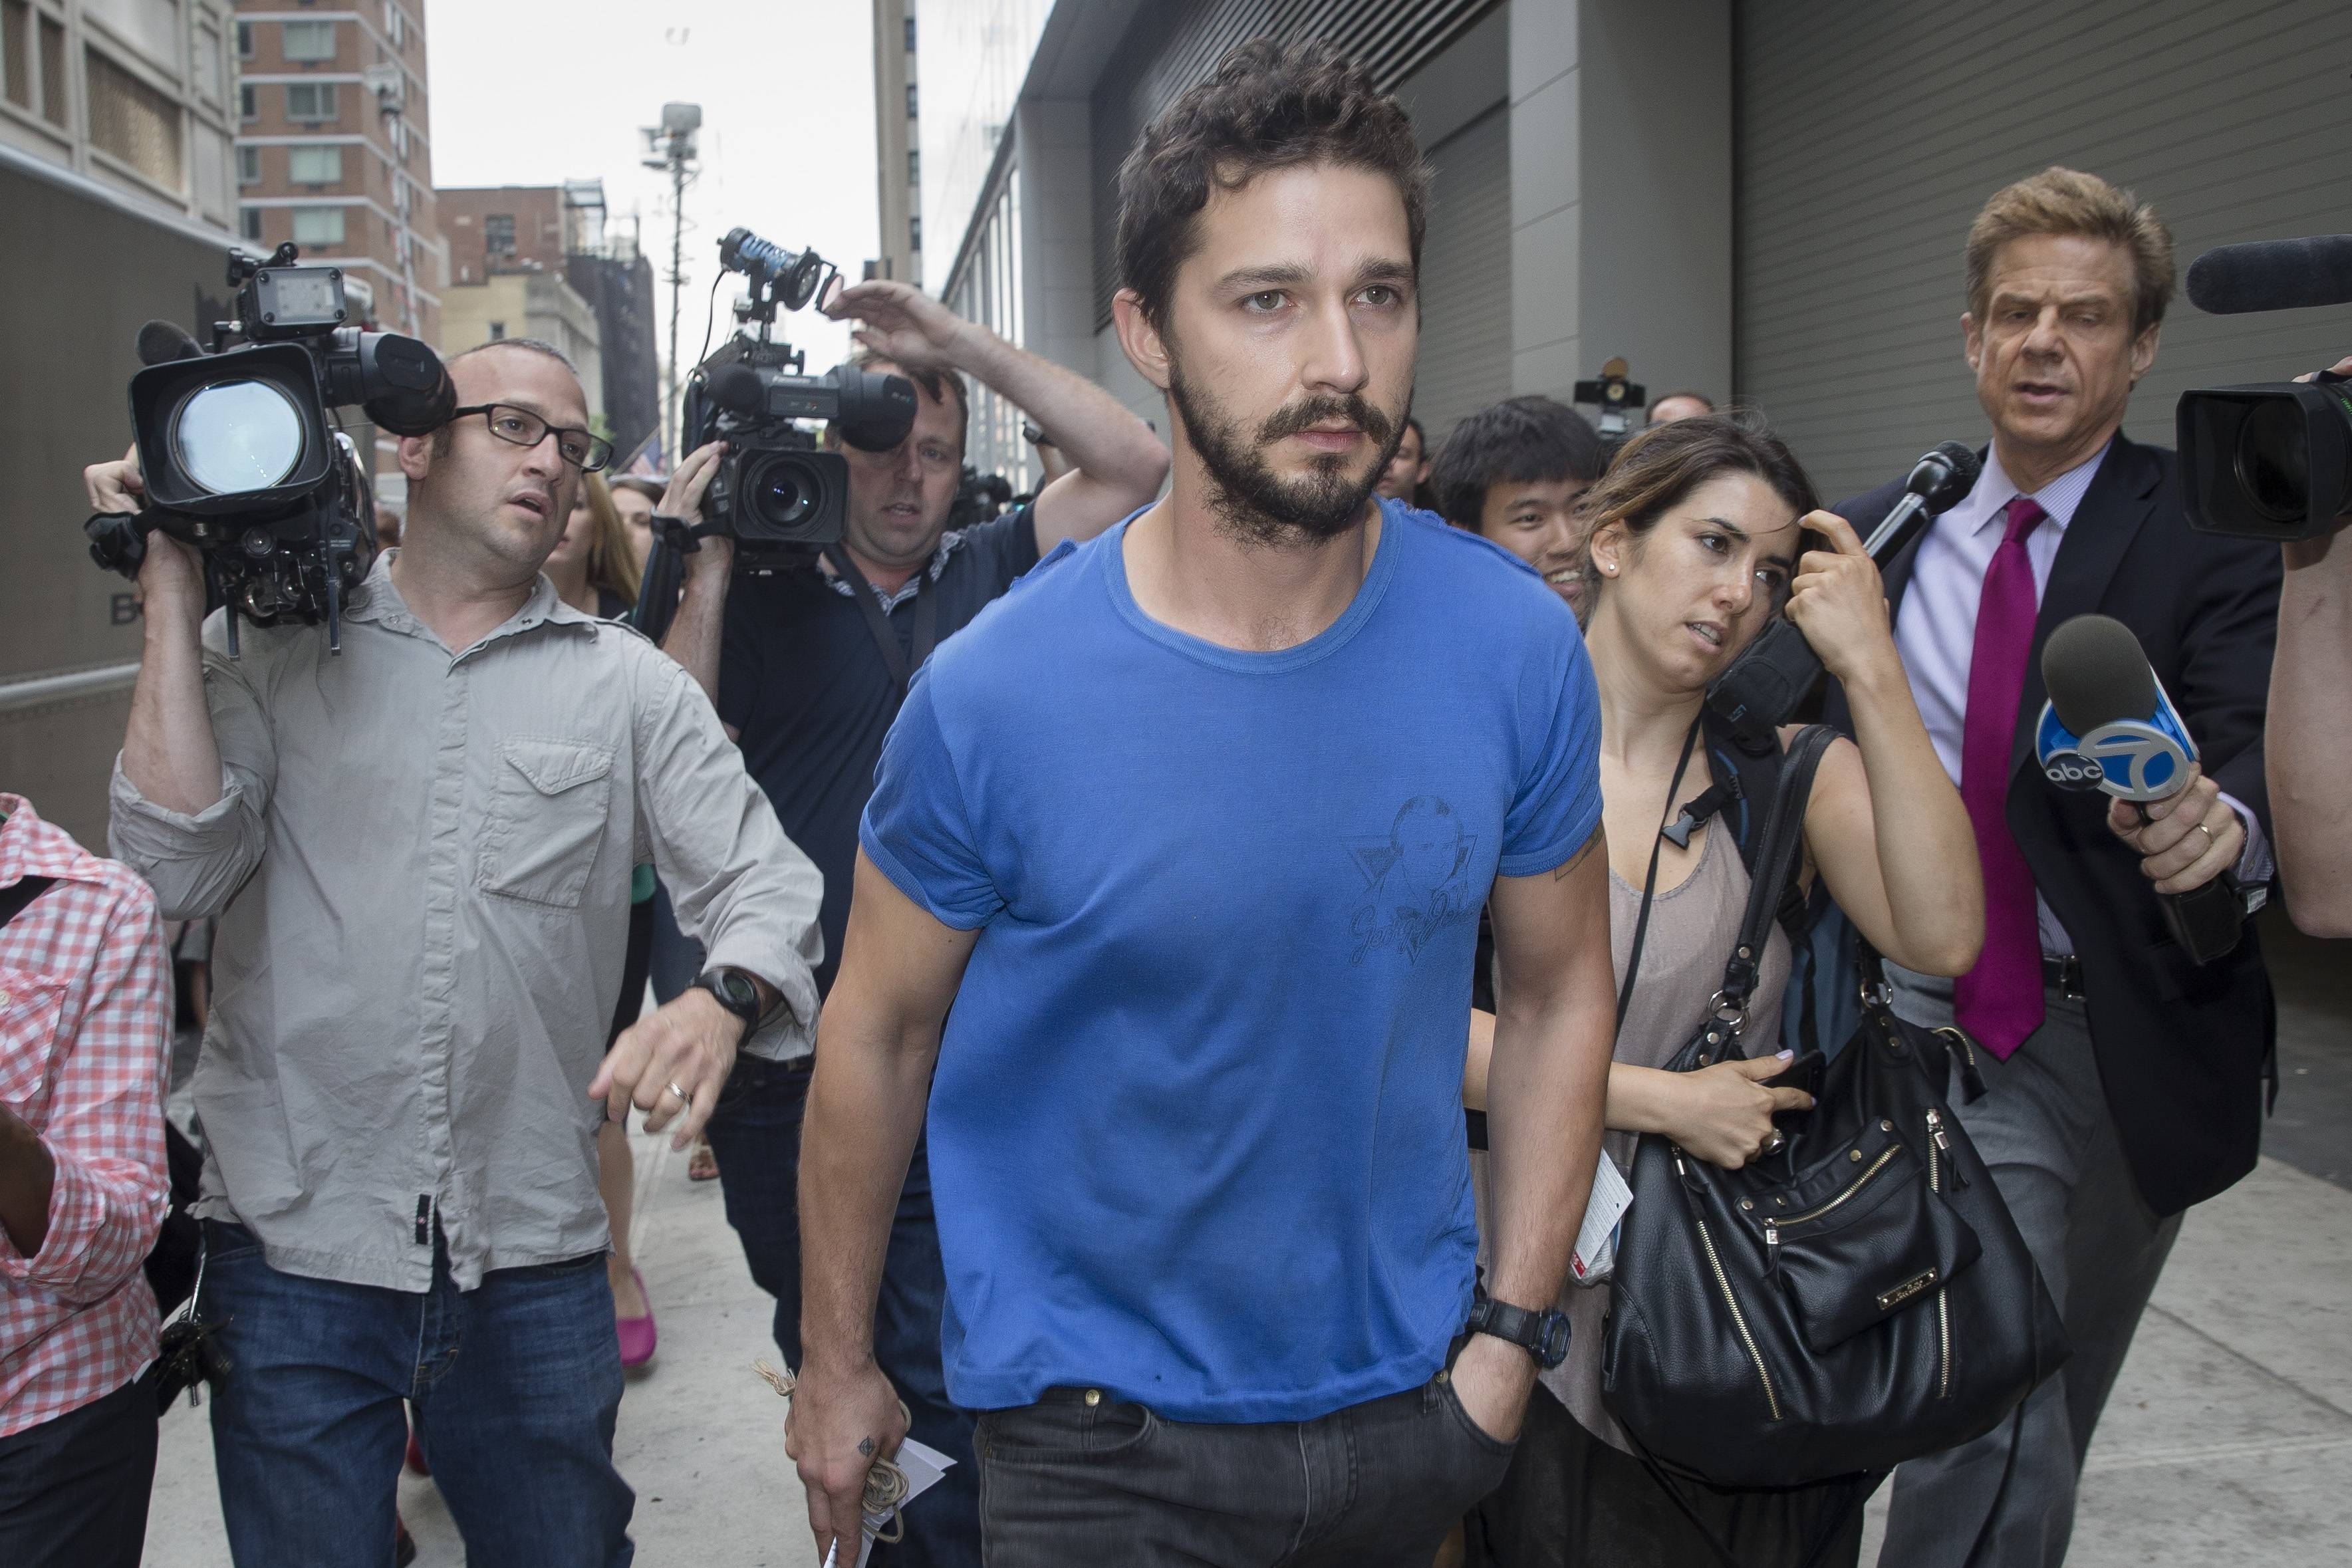 Shia LaBeouf and Alec Baldwin never ended up sharing a Broadway stage as planned last year, but real-life dramatics landed both of them in a distinctly less celebrated venue on Thursday: Manhattan courts.